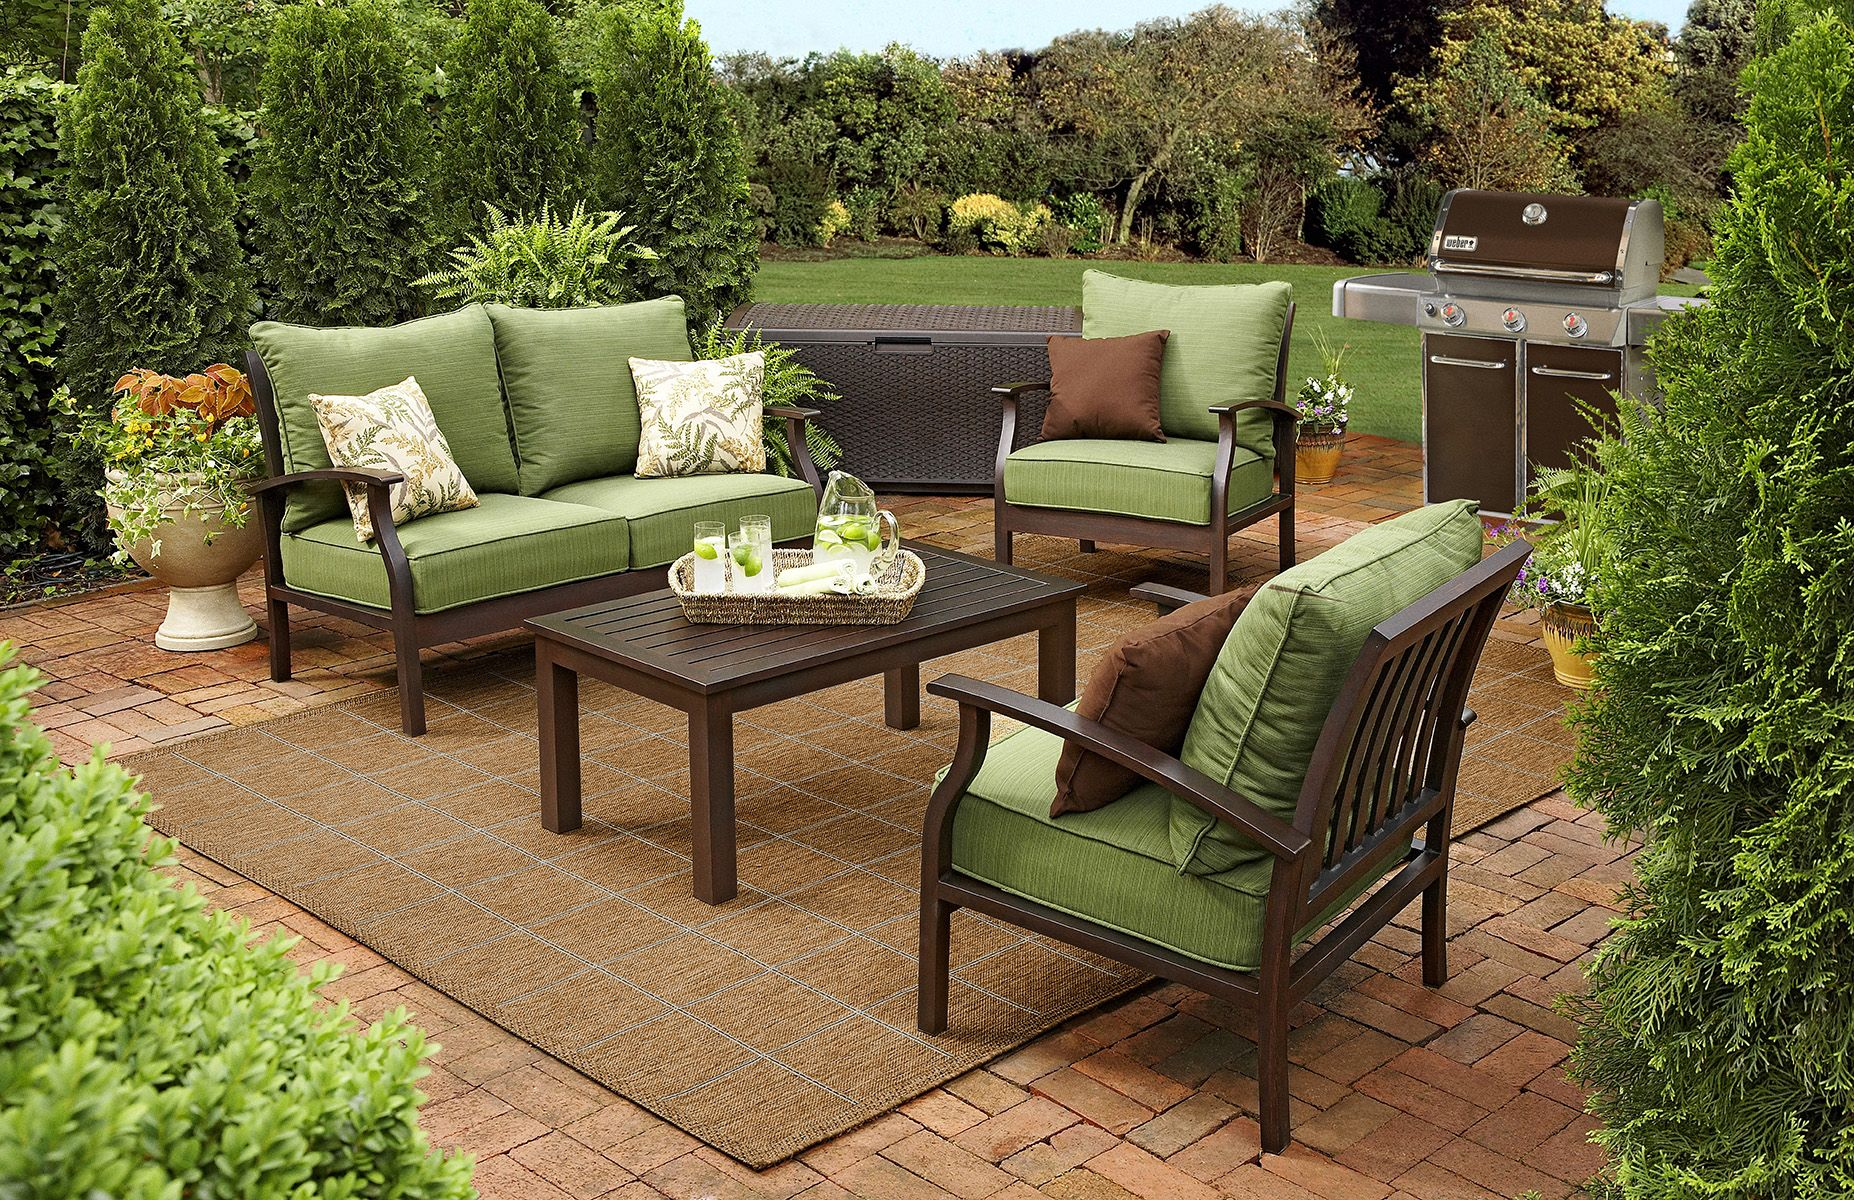 Product Not Found Lowes Com Outdoor Cushions Patio Furniture Outdoor Patio Furniture Sets Apartment Patio Furniture